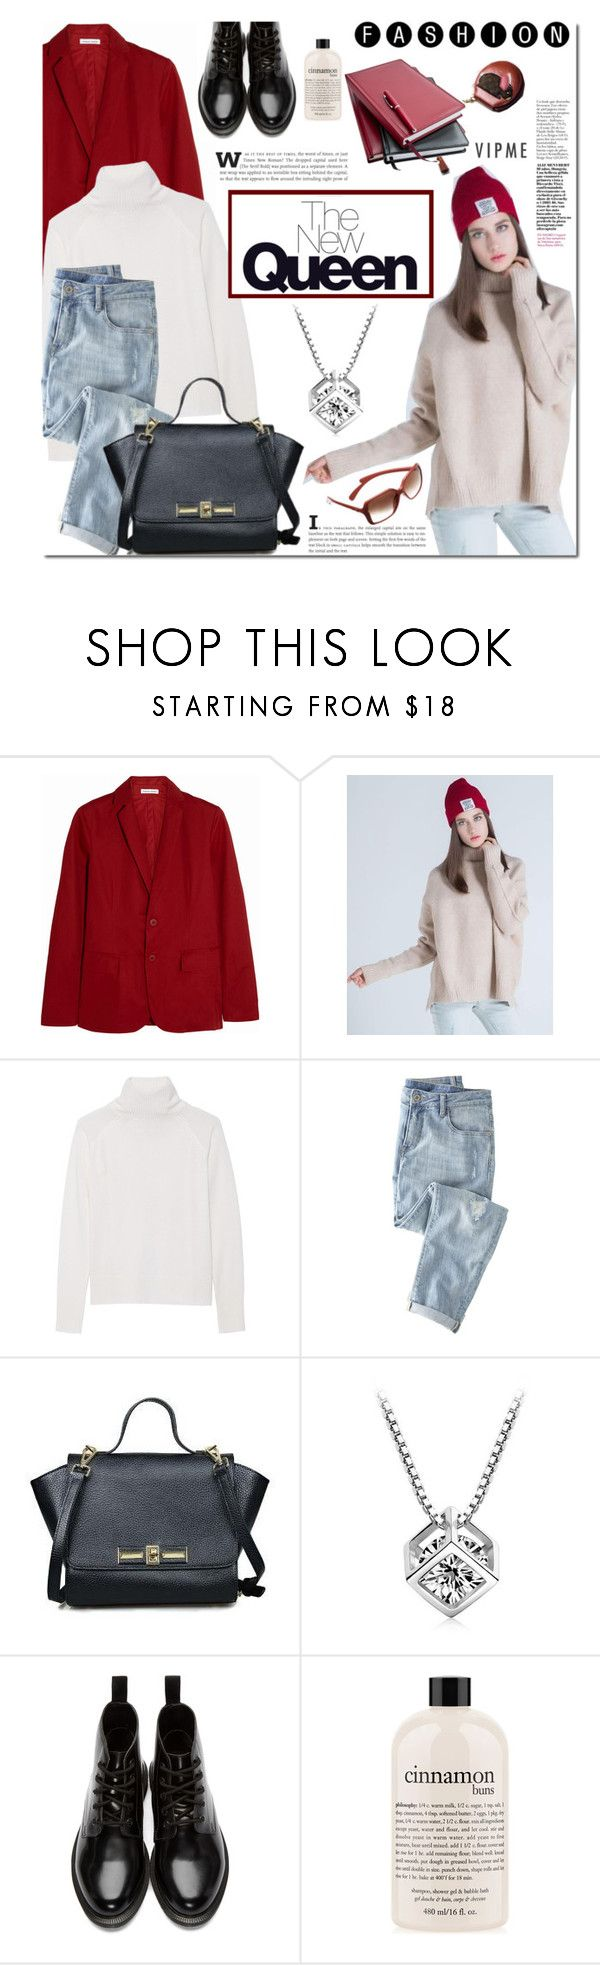 """""""Vipme"""" by mada-malureanu ❤ liked on Polyvore featuring Tomas Maier, Line, Wrap, Dr. Martens, philosophy, women's clothing, women, female, woman and misses"""